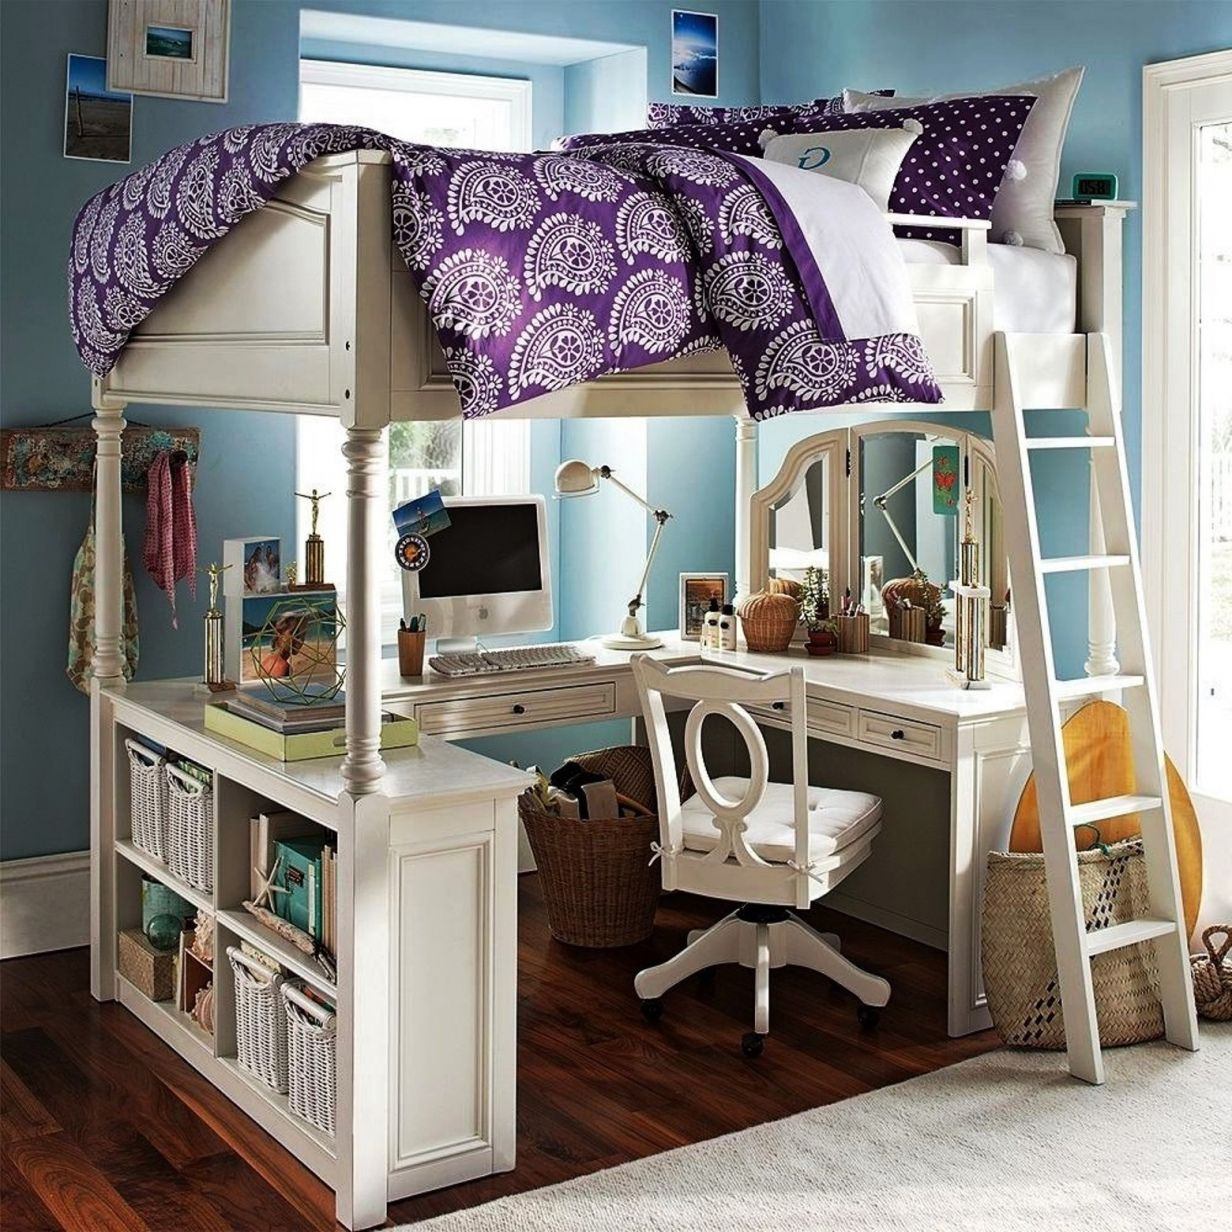 Fresh Bunk Bed With Desk Underneath For Sale Check More At Http